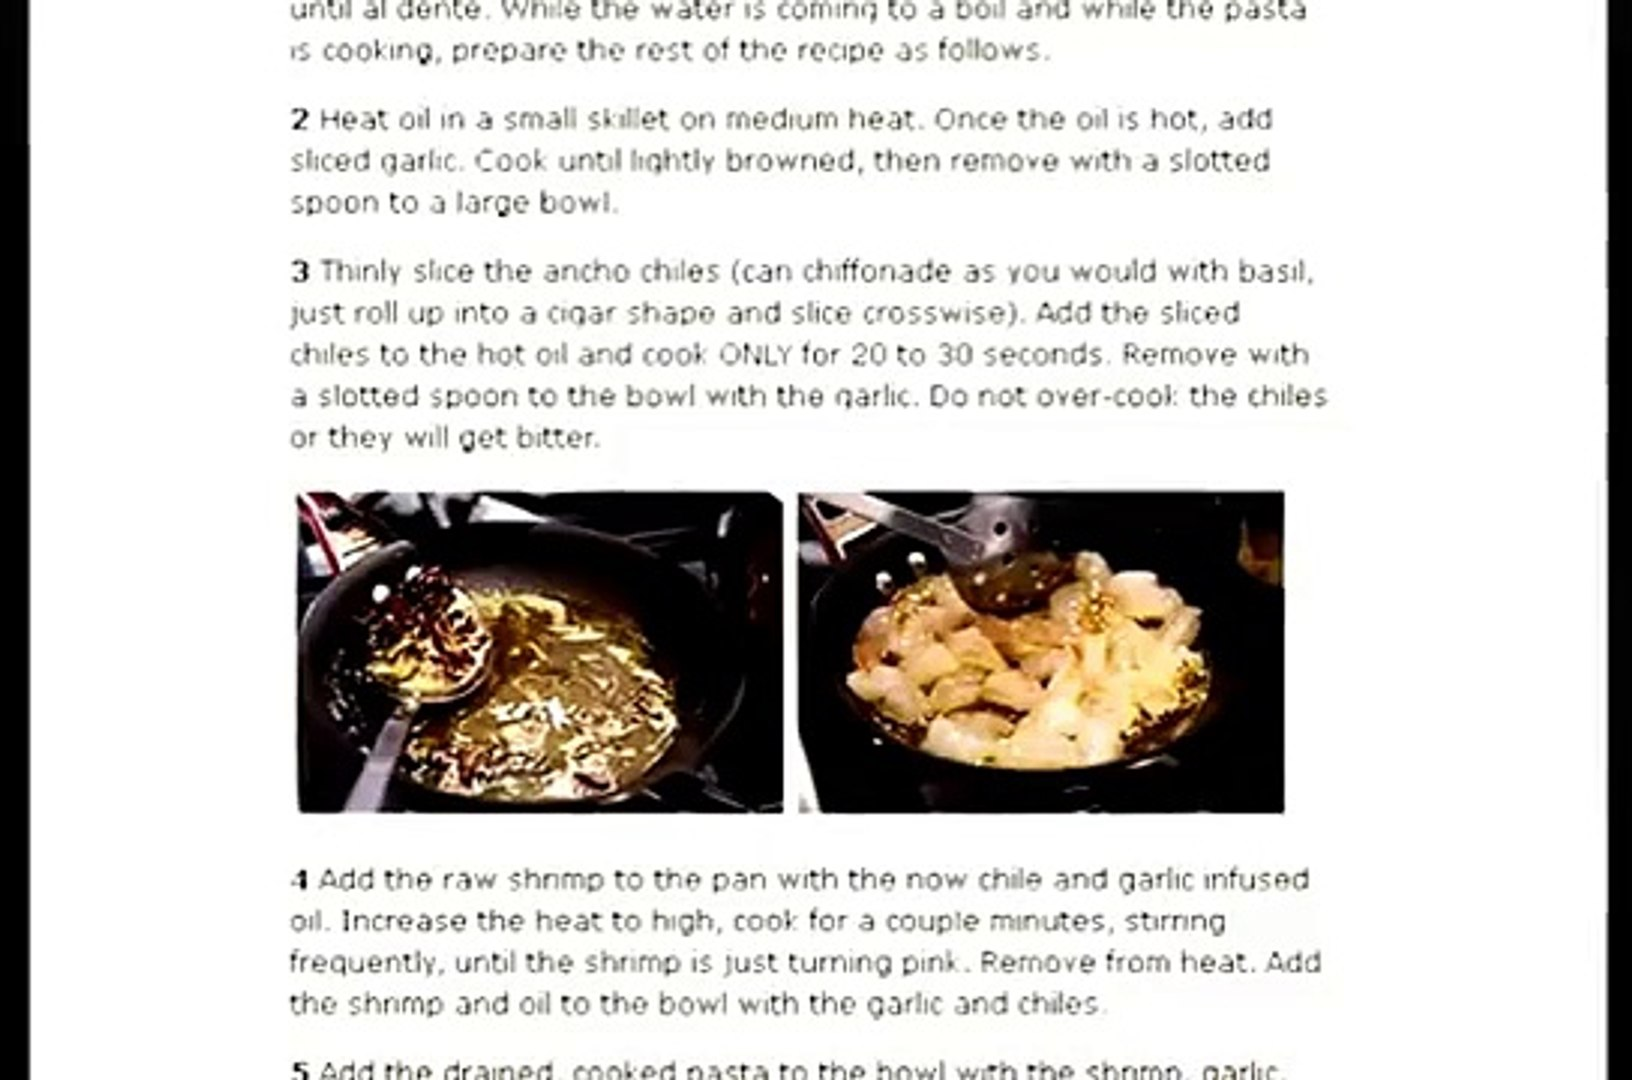 How to Make Ancho Chile, Shrimp and Pasta Recipes | pasta recipes, | quick recipes, | all recipes